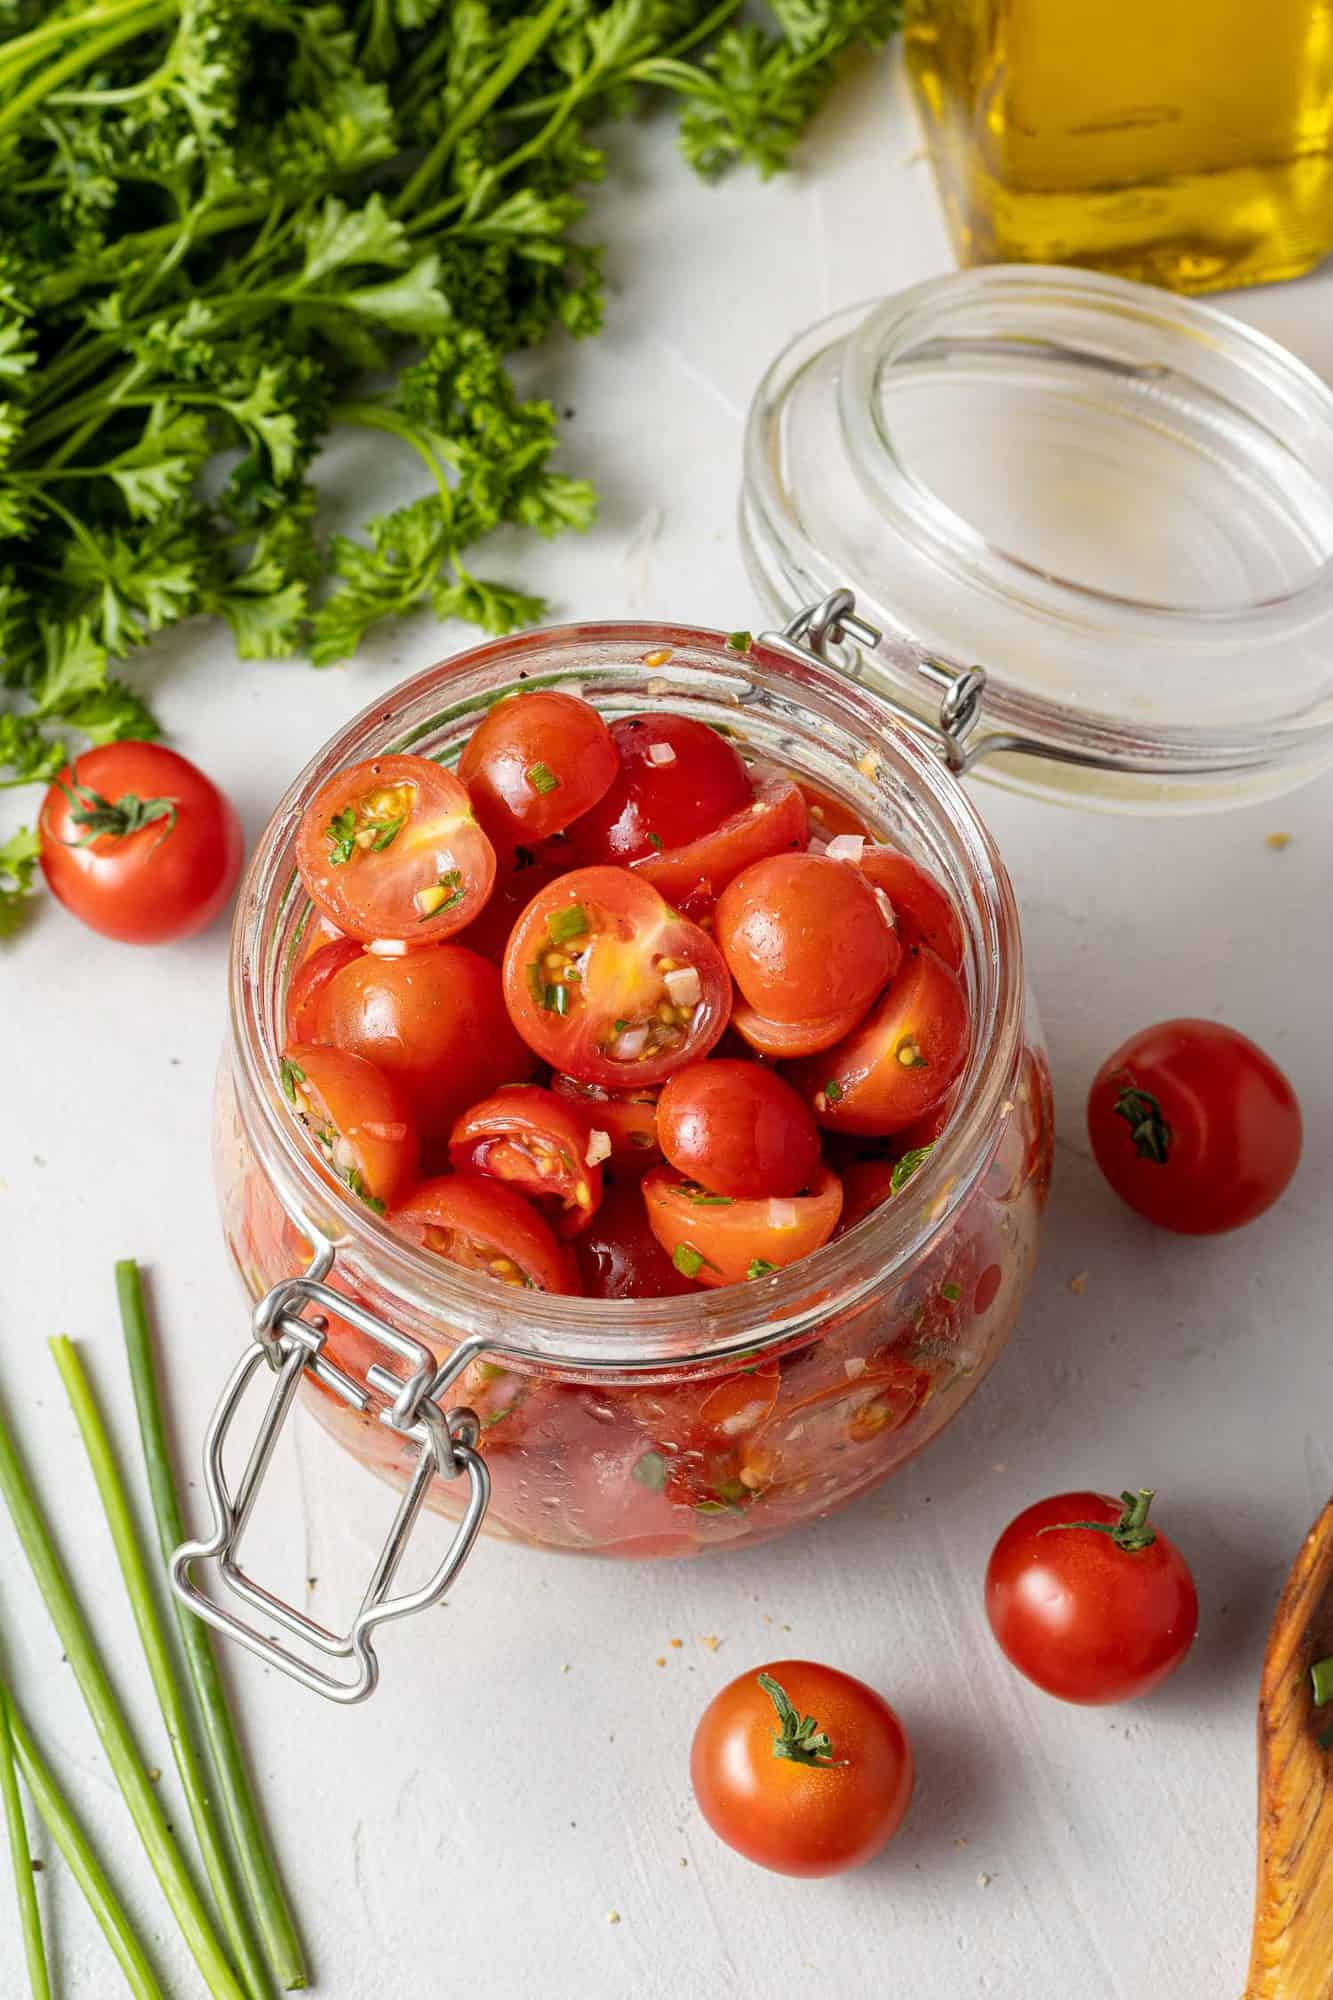 Tomatoes in a jar surrounded by fresh herbs.